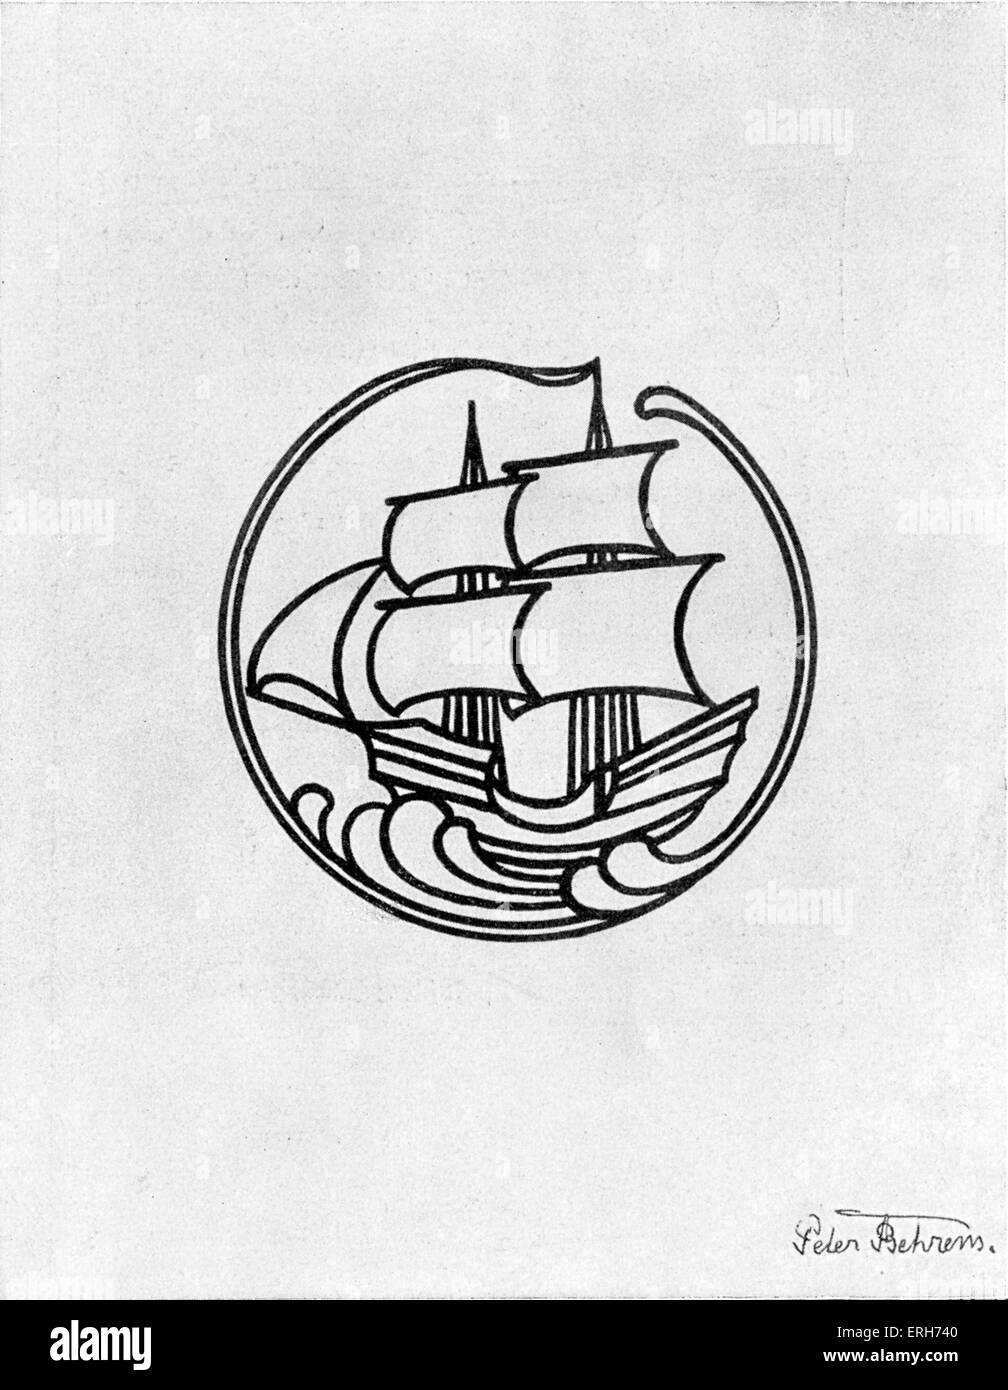 Emblem / logo of  Die Insel in 1899 l ( The Island) by Peter Behrens (14 April  1868 – 27 February  1940)  -  German - Stock Image